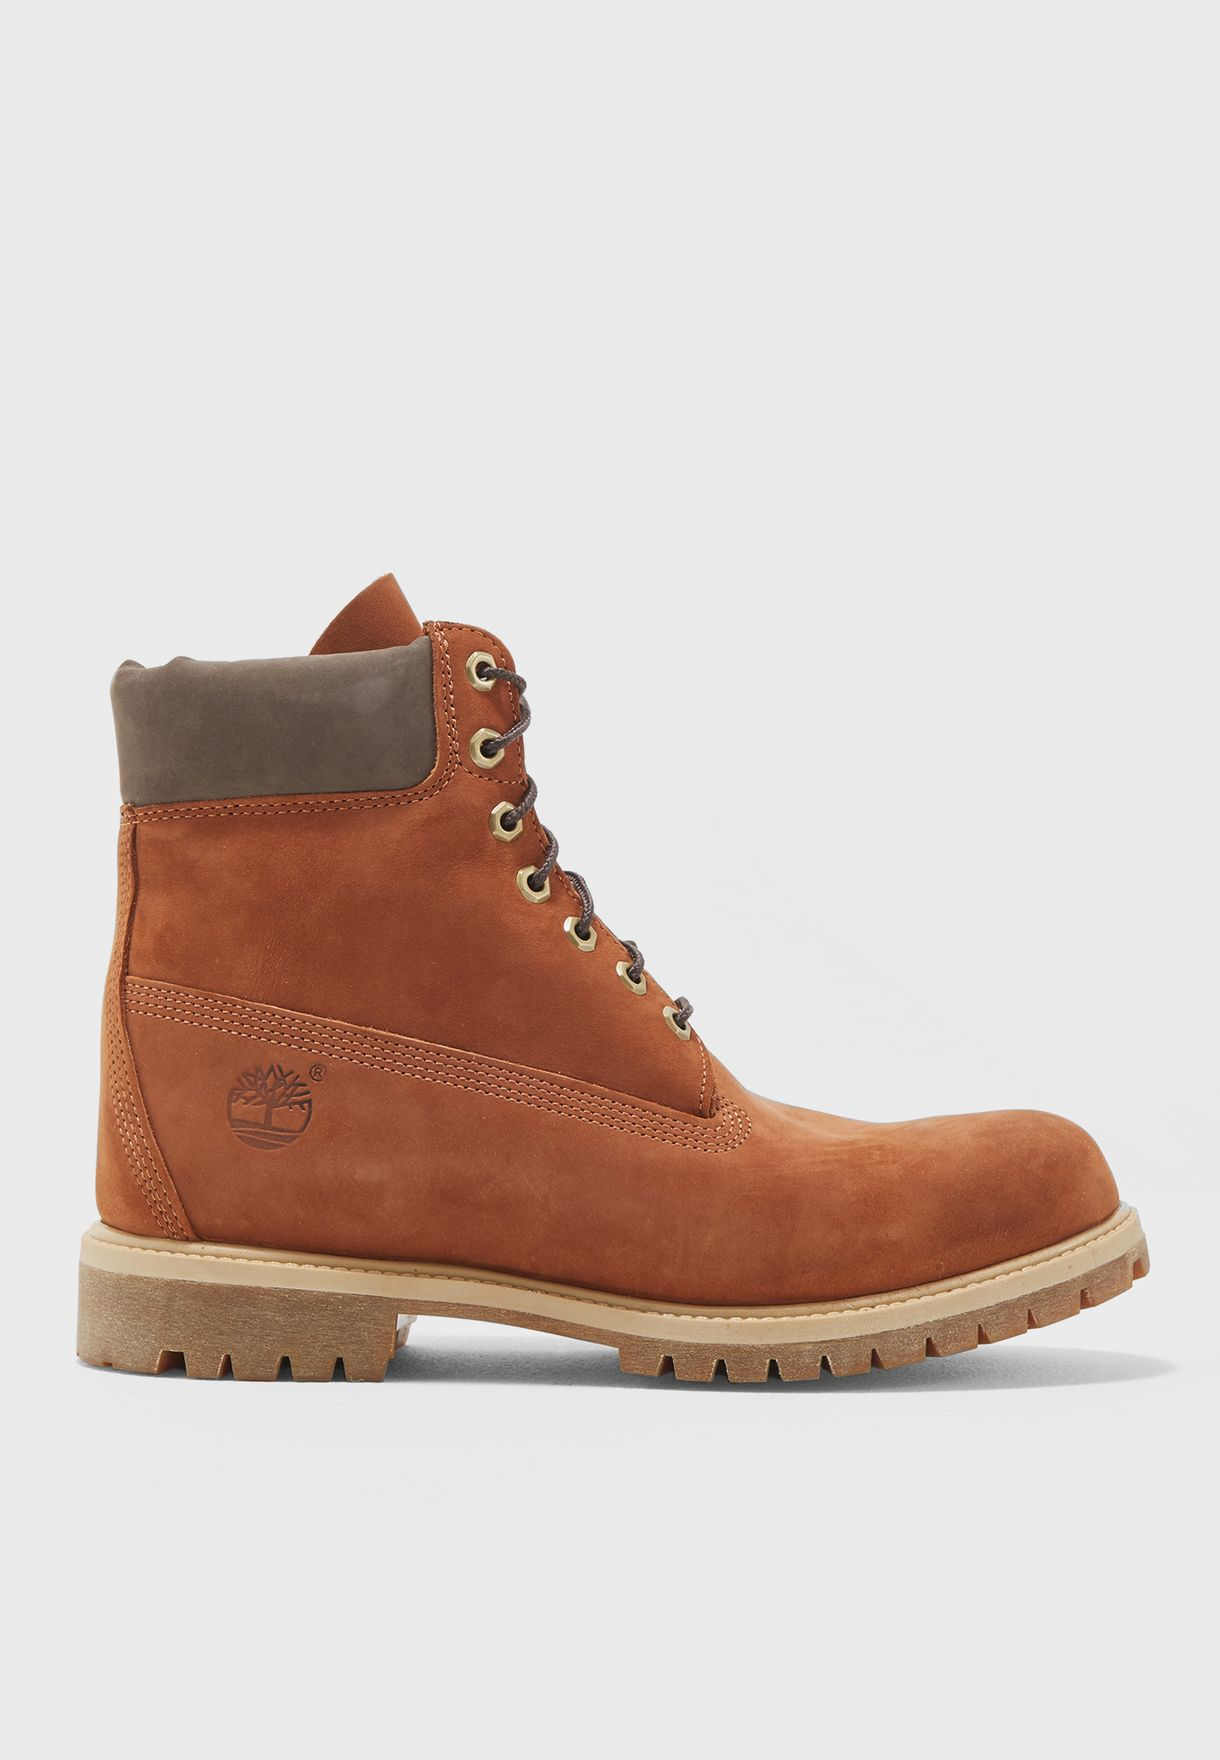 384702ffb2a83 Shop Timberland browns 6 quot  Premium Boot TMA1LXUW for Men in ...